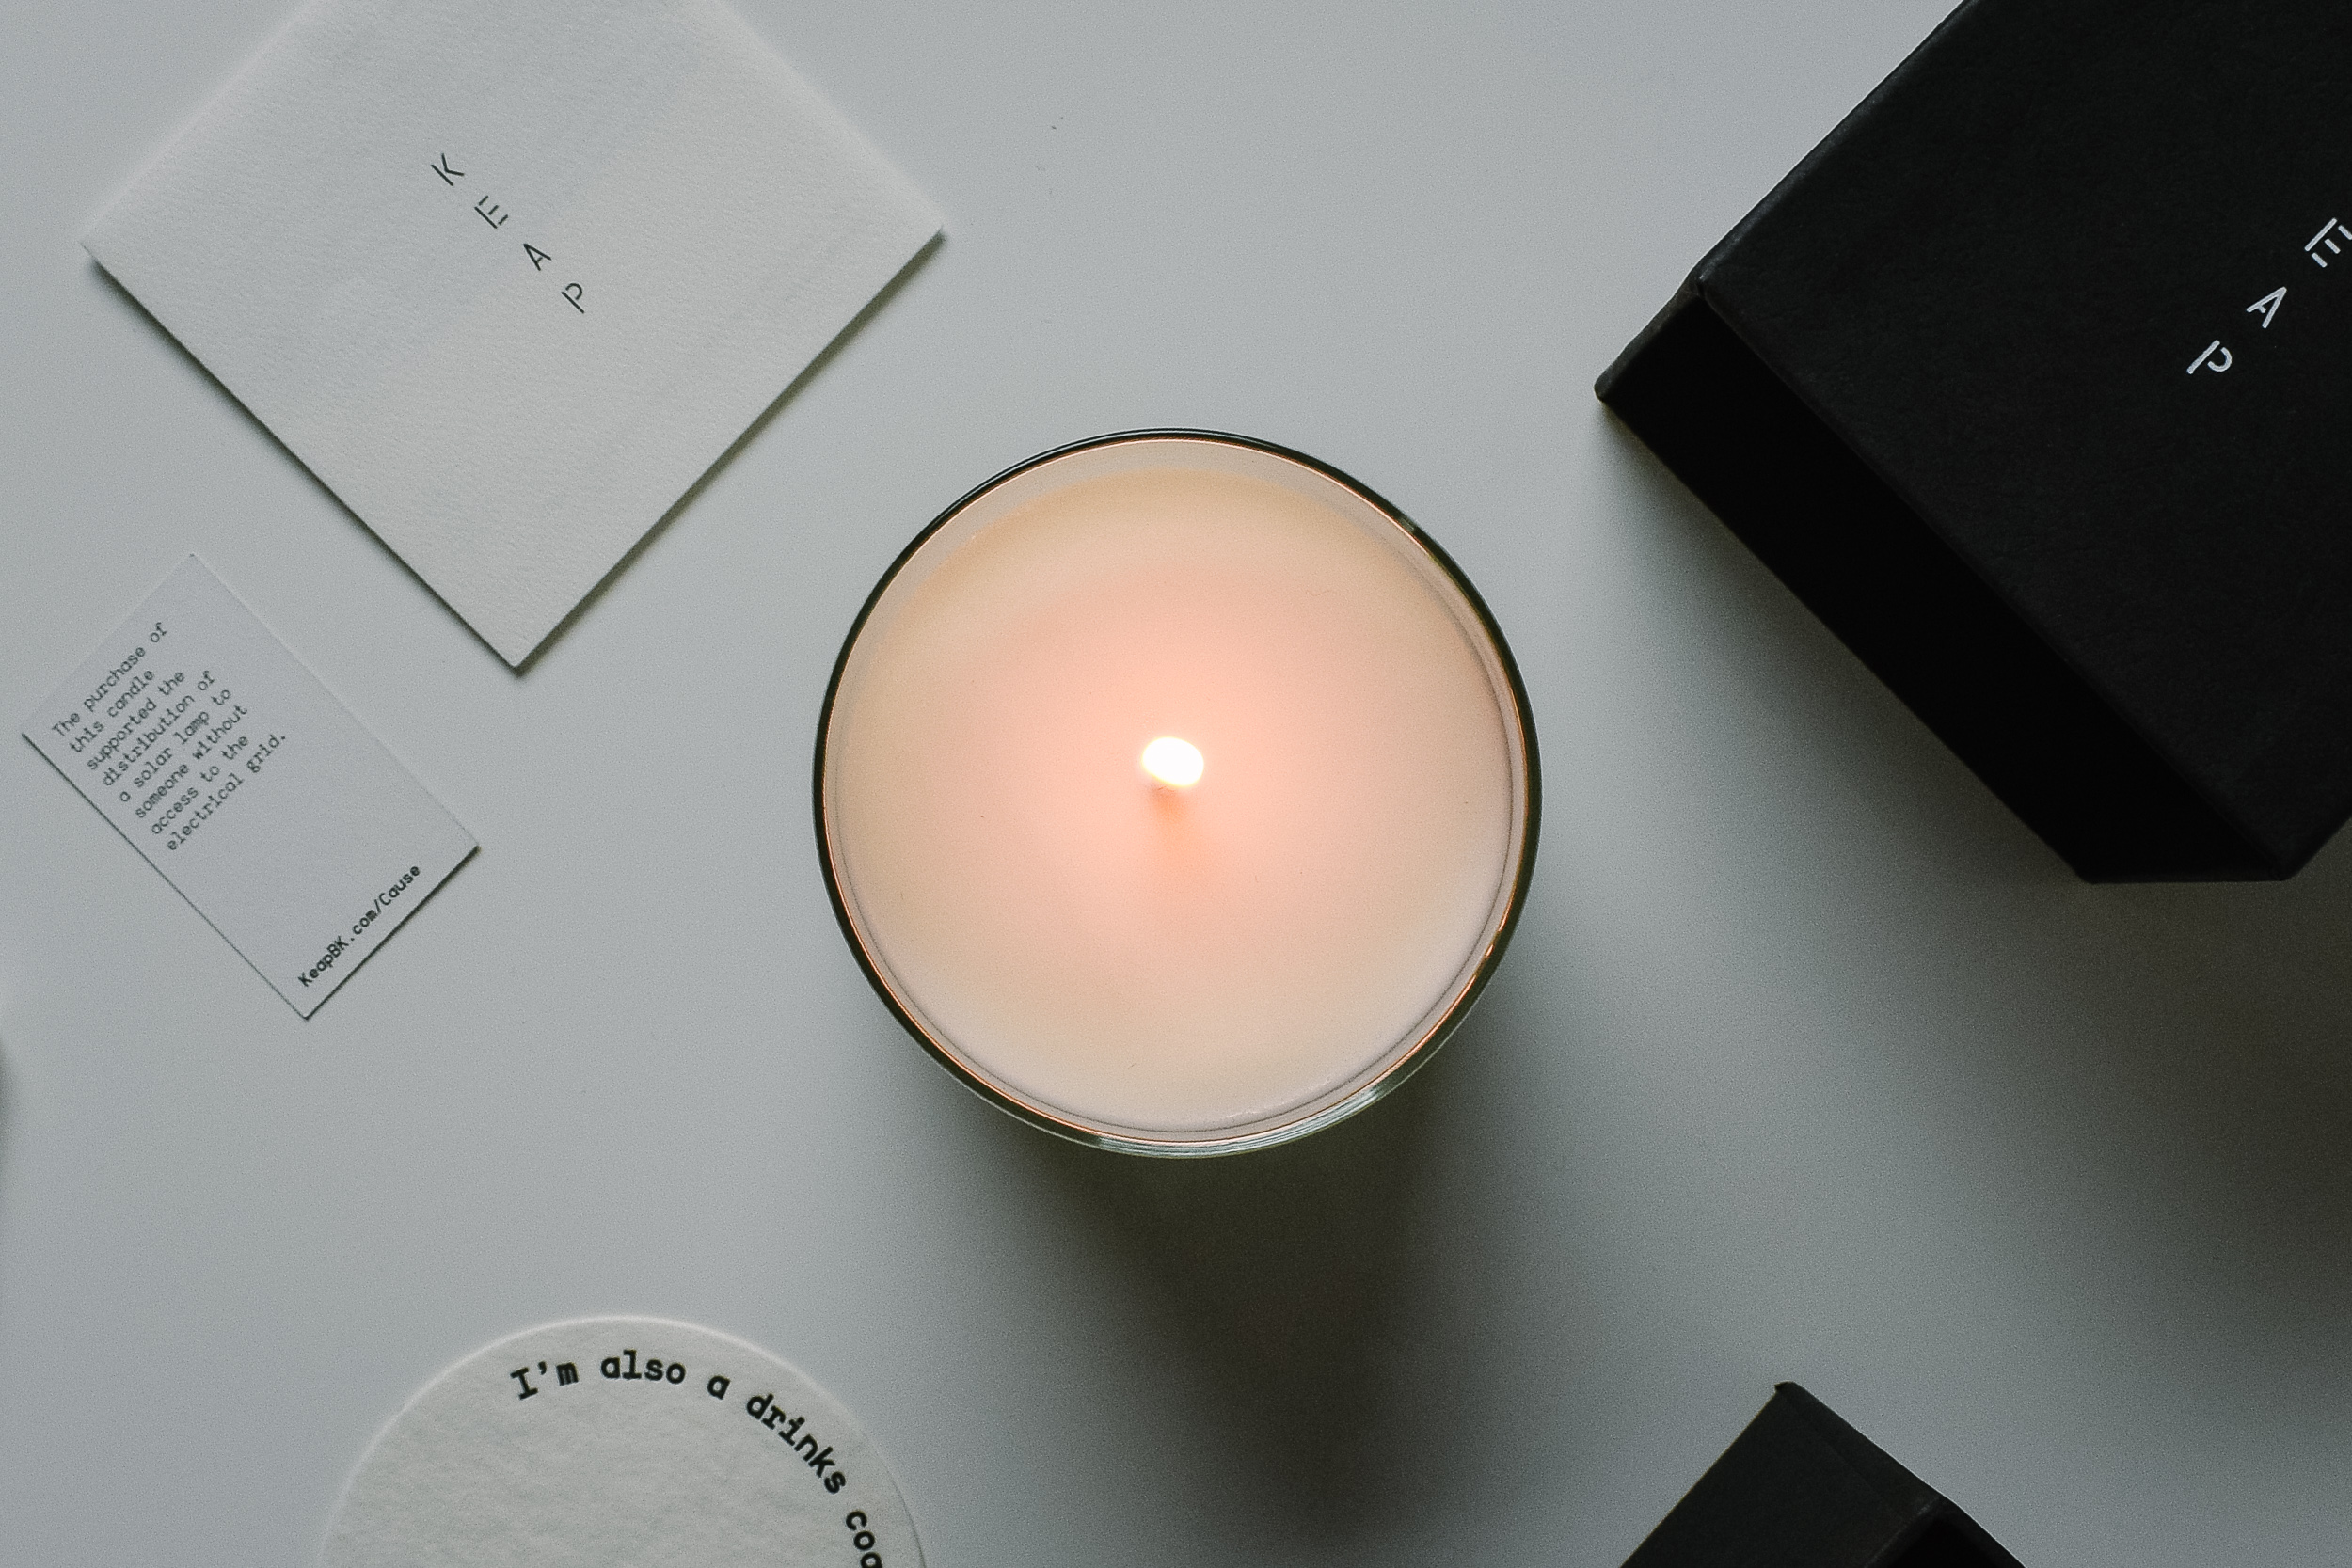 Keap Candle - Made with the most sustainable and slow burning wax for candles, poured in Brooklyn, NY, with all supplies sourced in the USA. Plus, Keap donates 25% of net profits to SolarAid to help bring solar light to communities in need.